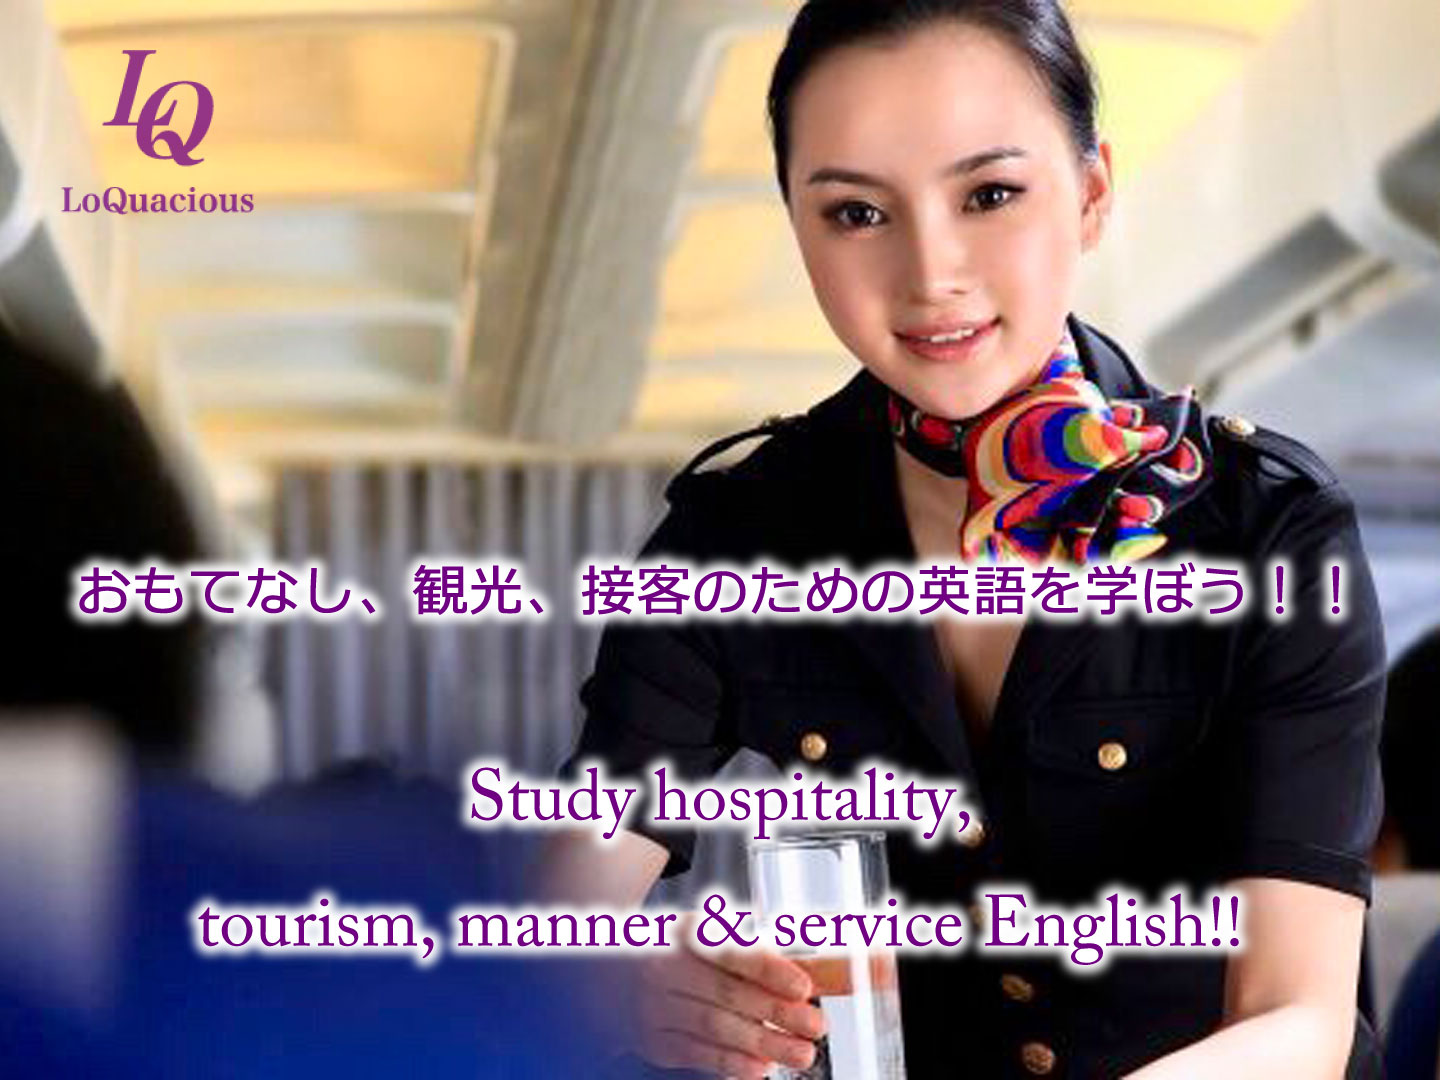 Study hospitality, tourism, manner & service English!!